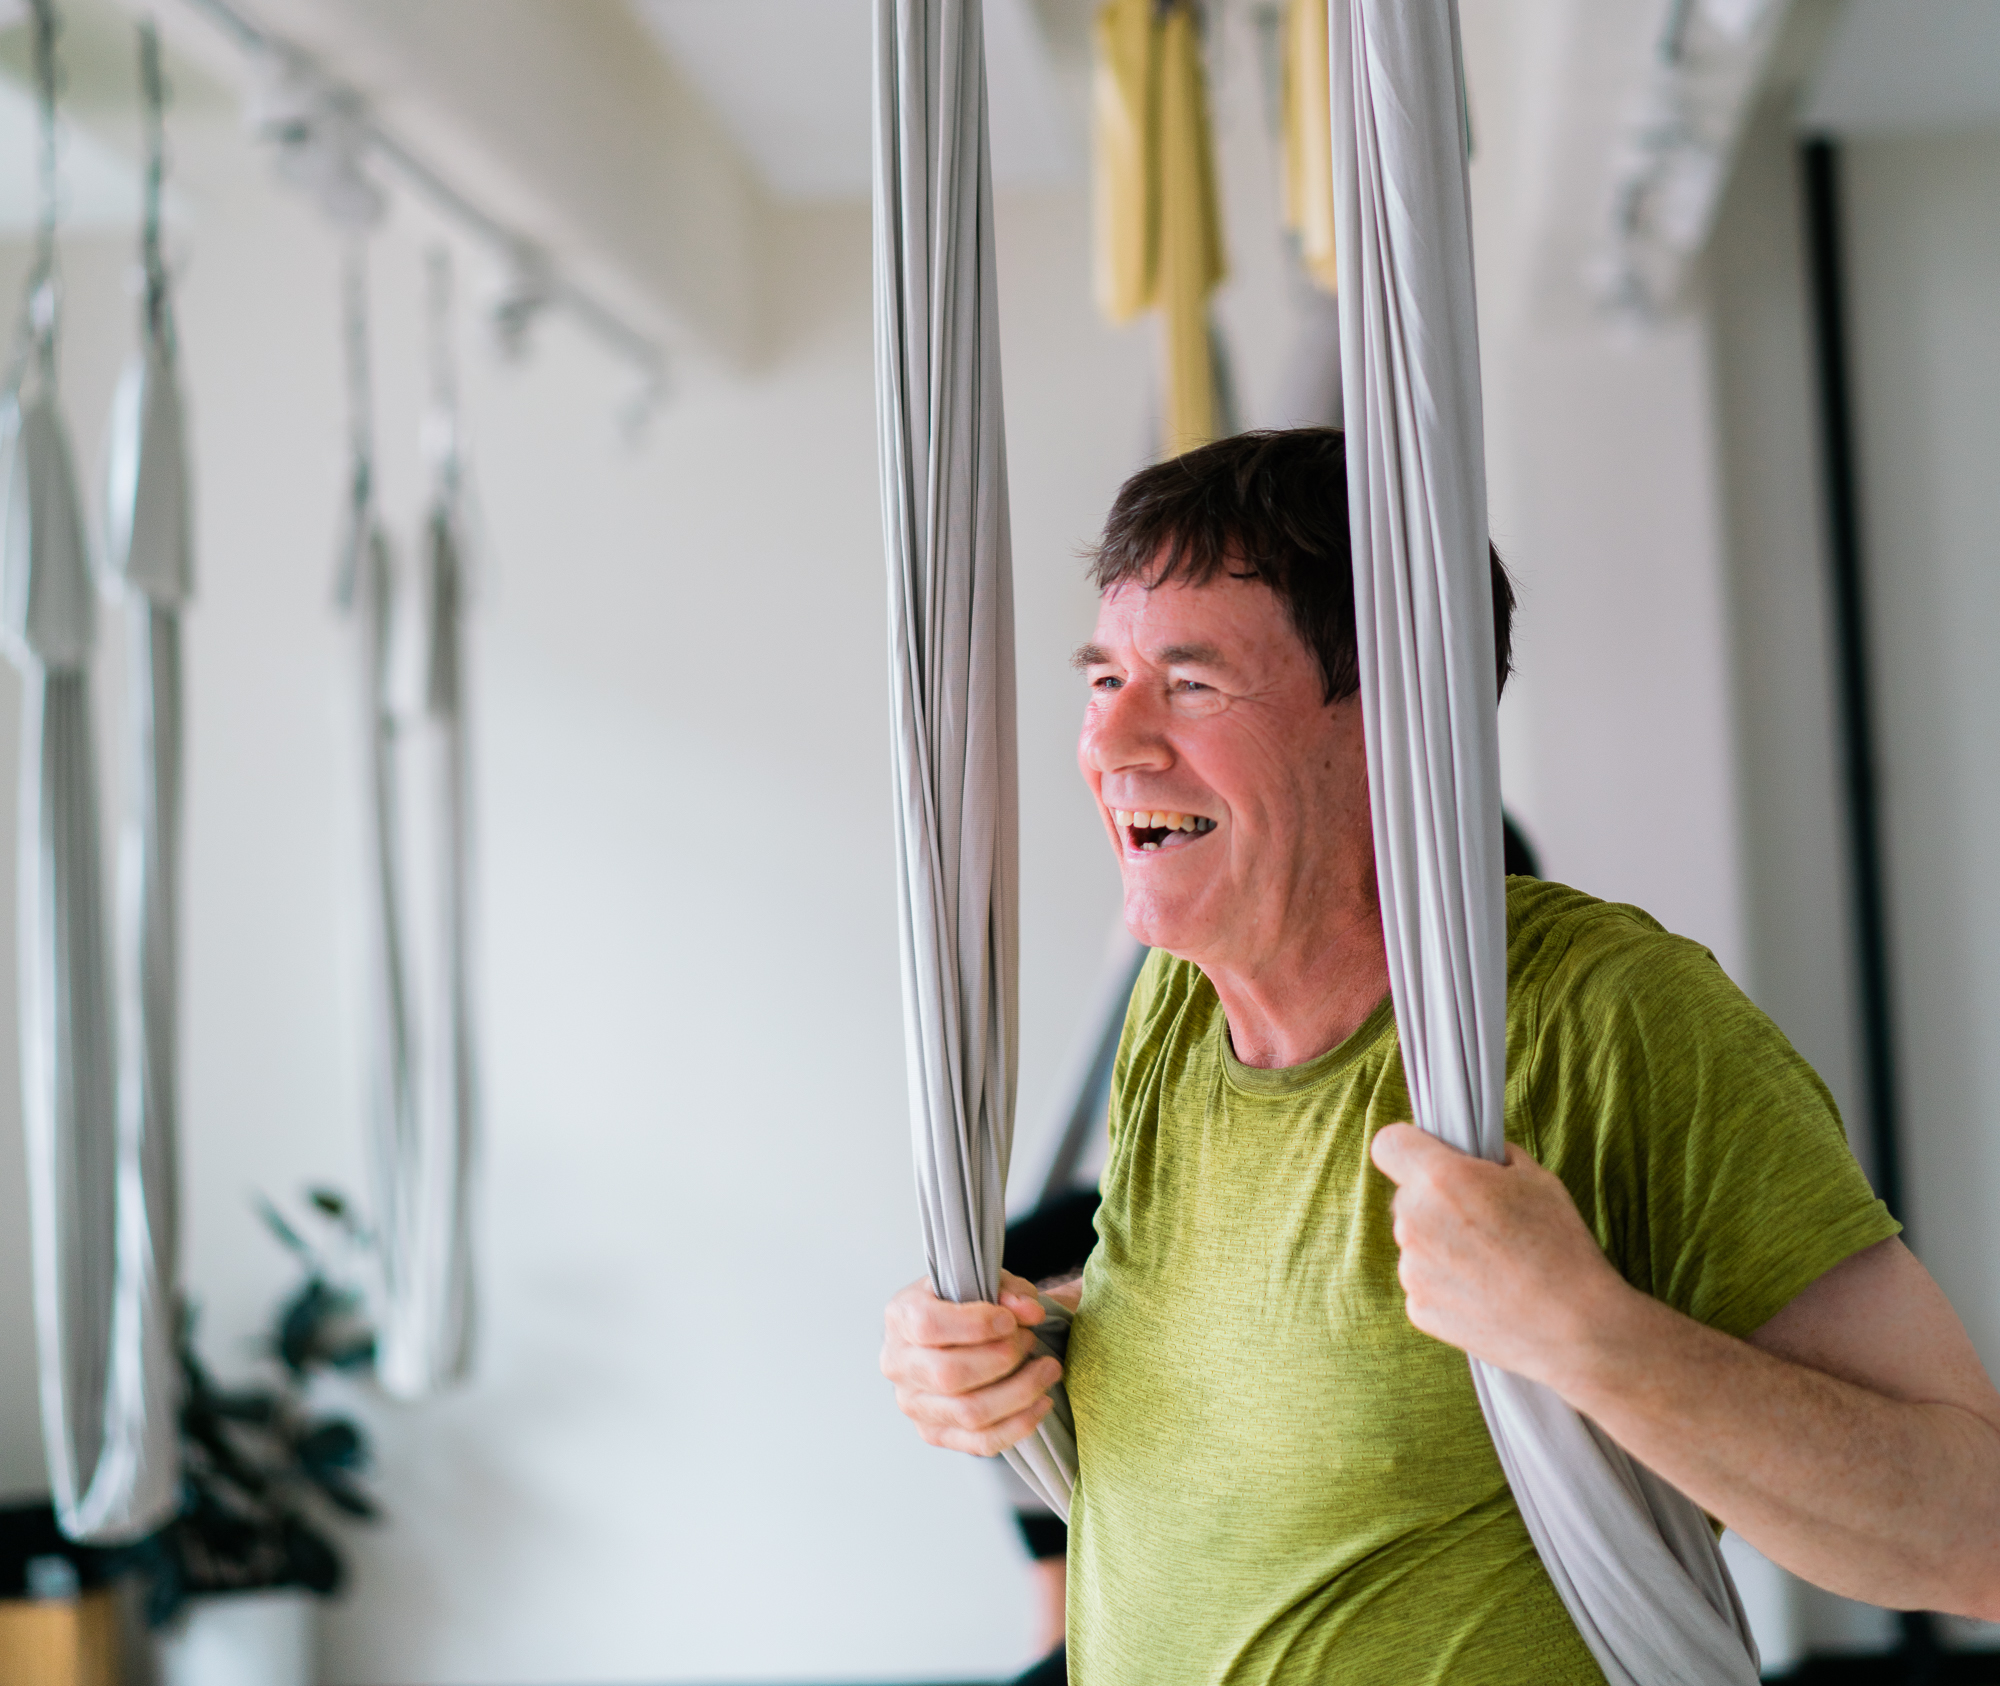 Michael, a dedicated yoga practitioner, in one of his aerial yoga classes at Little Mandarin